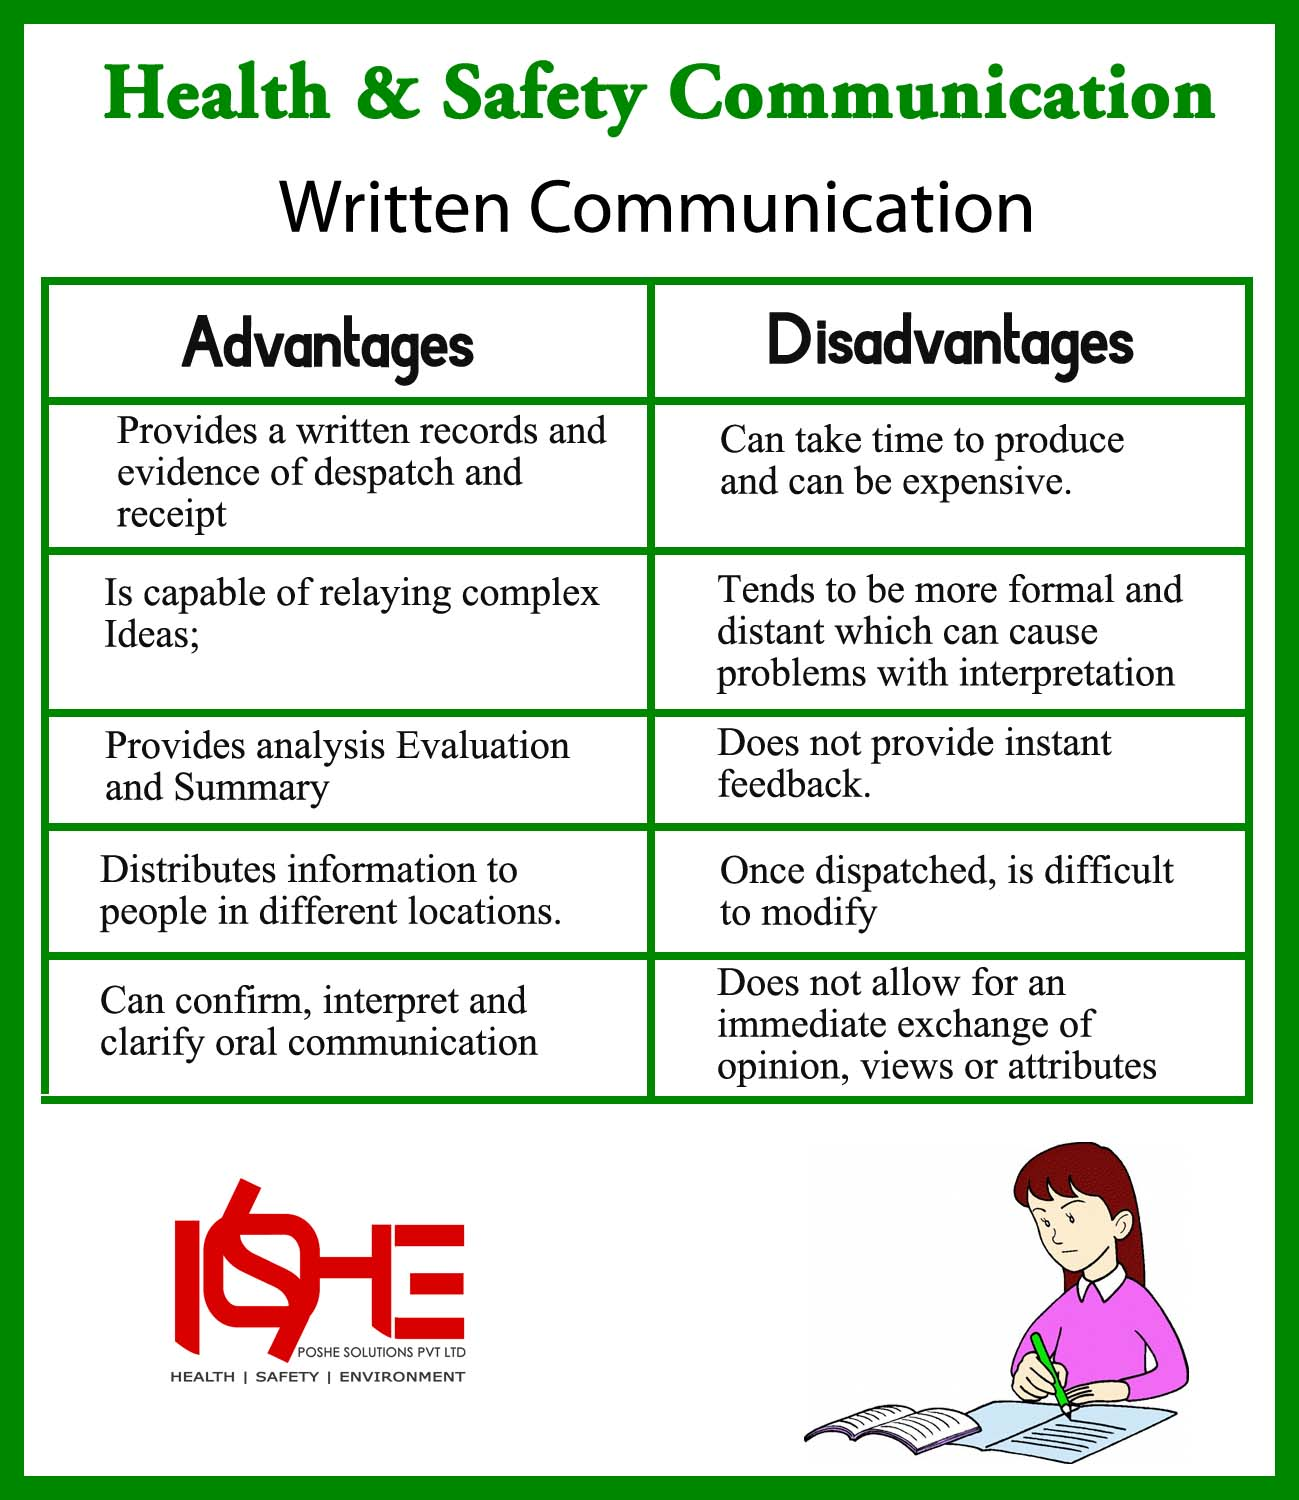 Advantages and disadvantages of modern communications